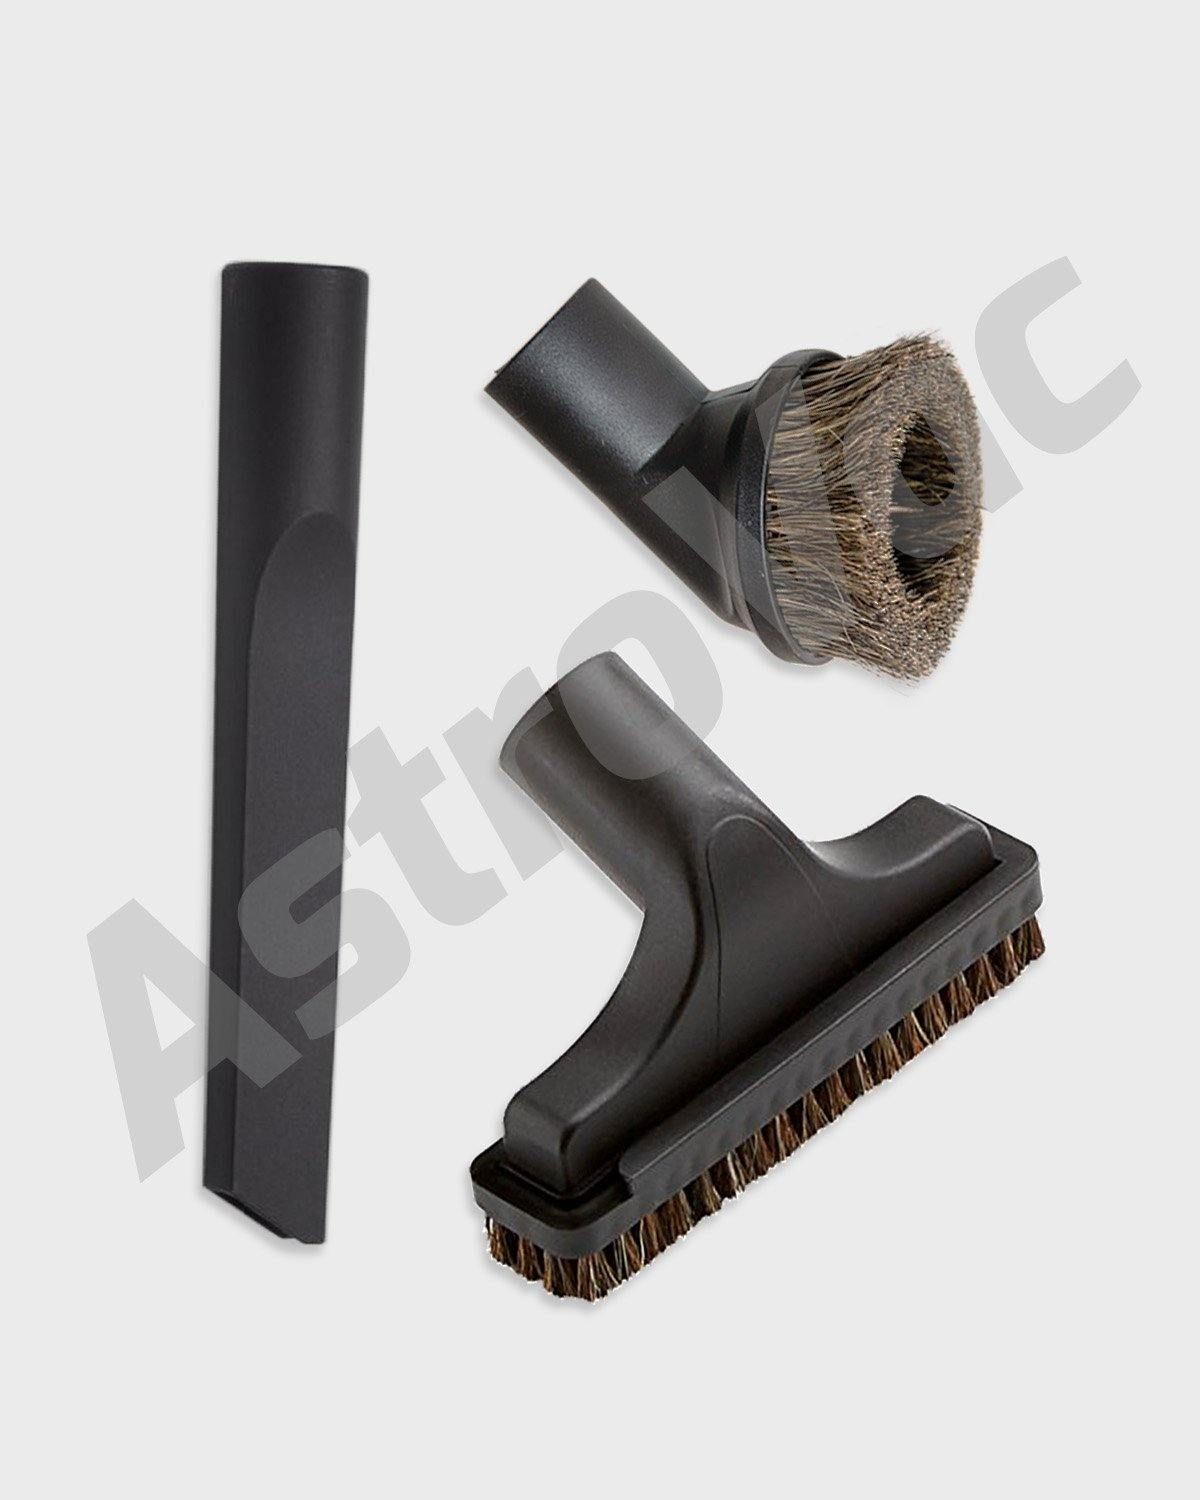 3-Piece Vacuum Tool Set